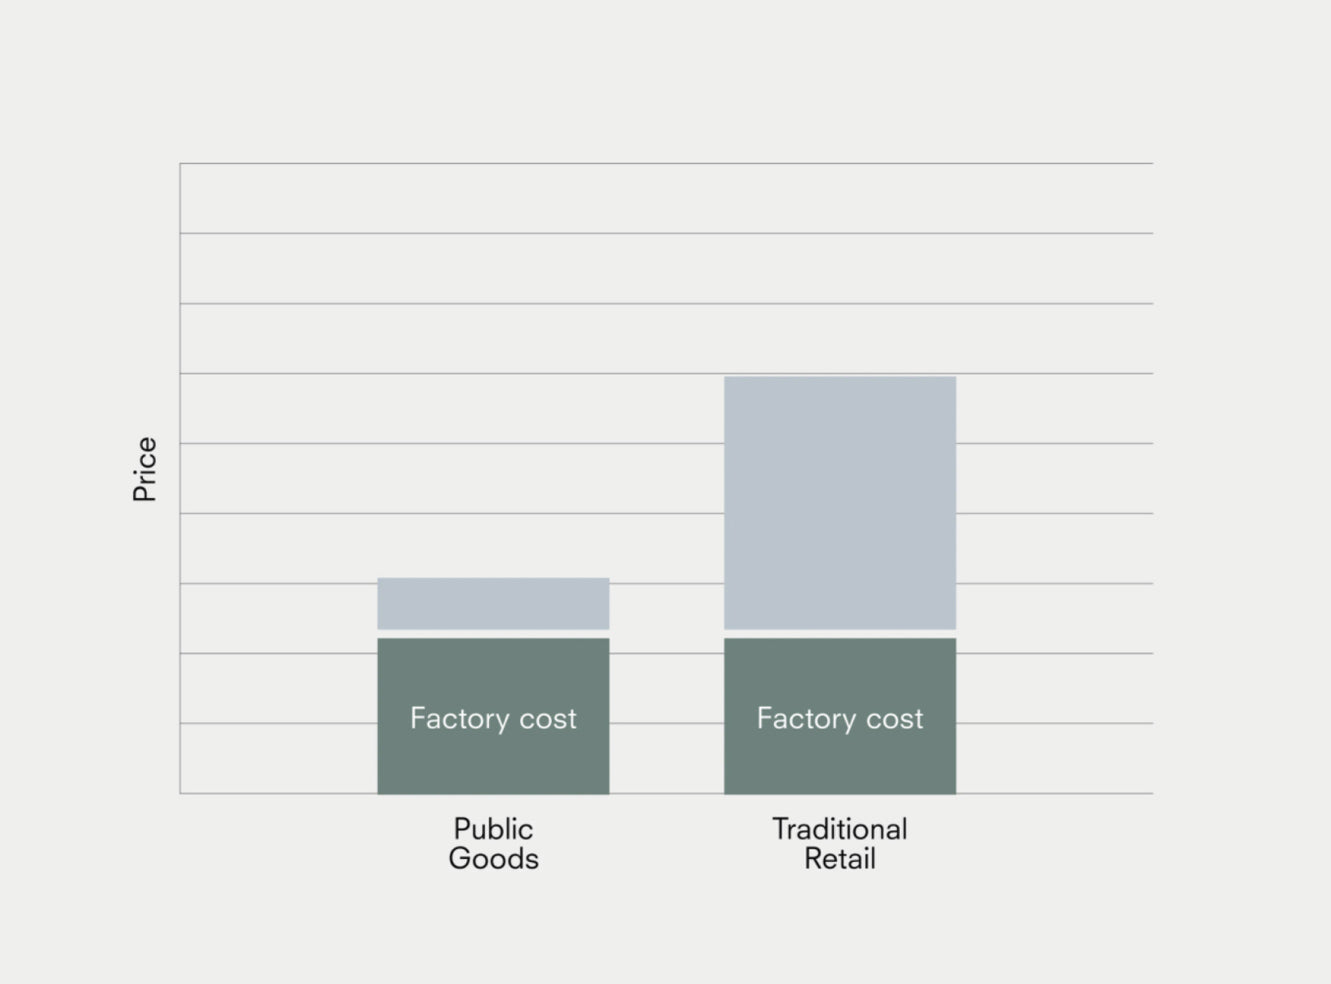 Price graph showing Public Goods more favorable than traditional retails.